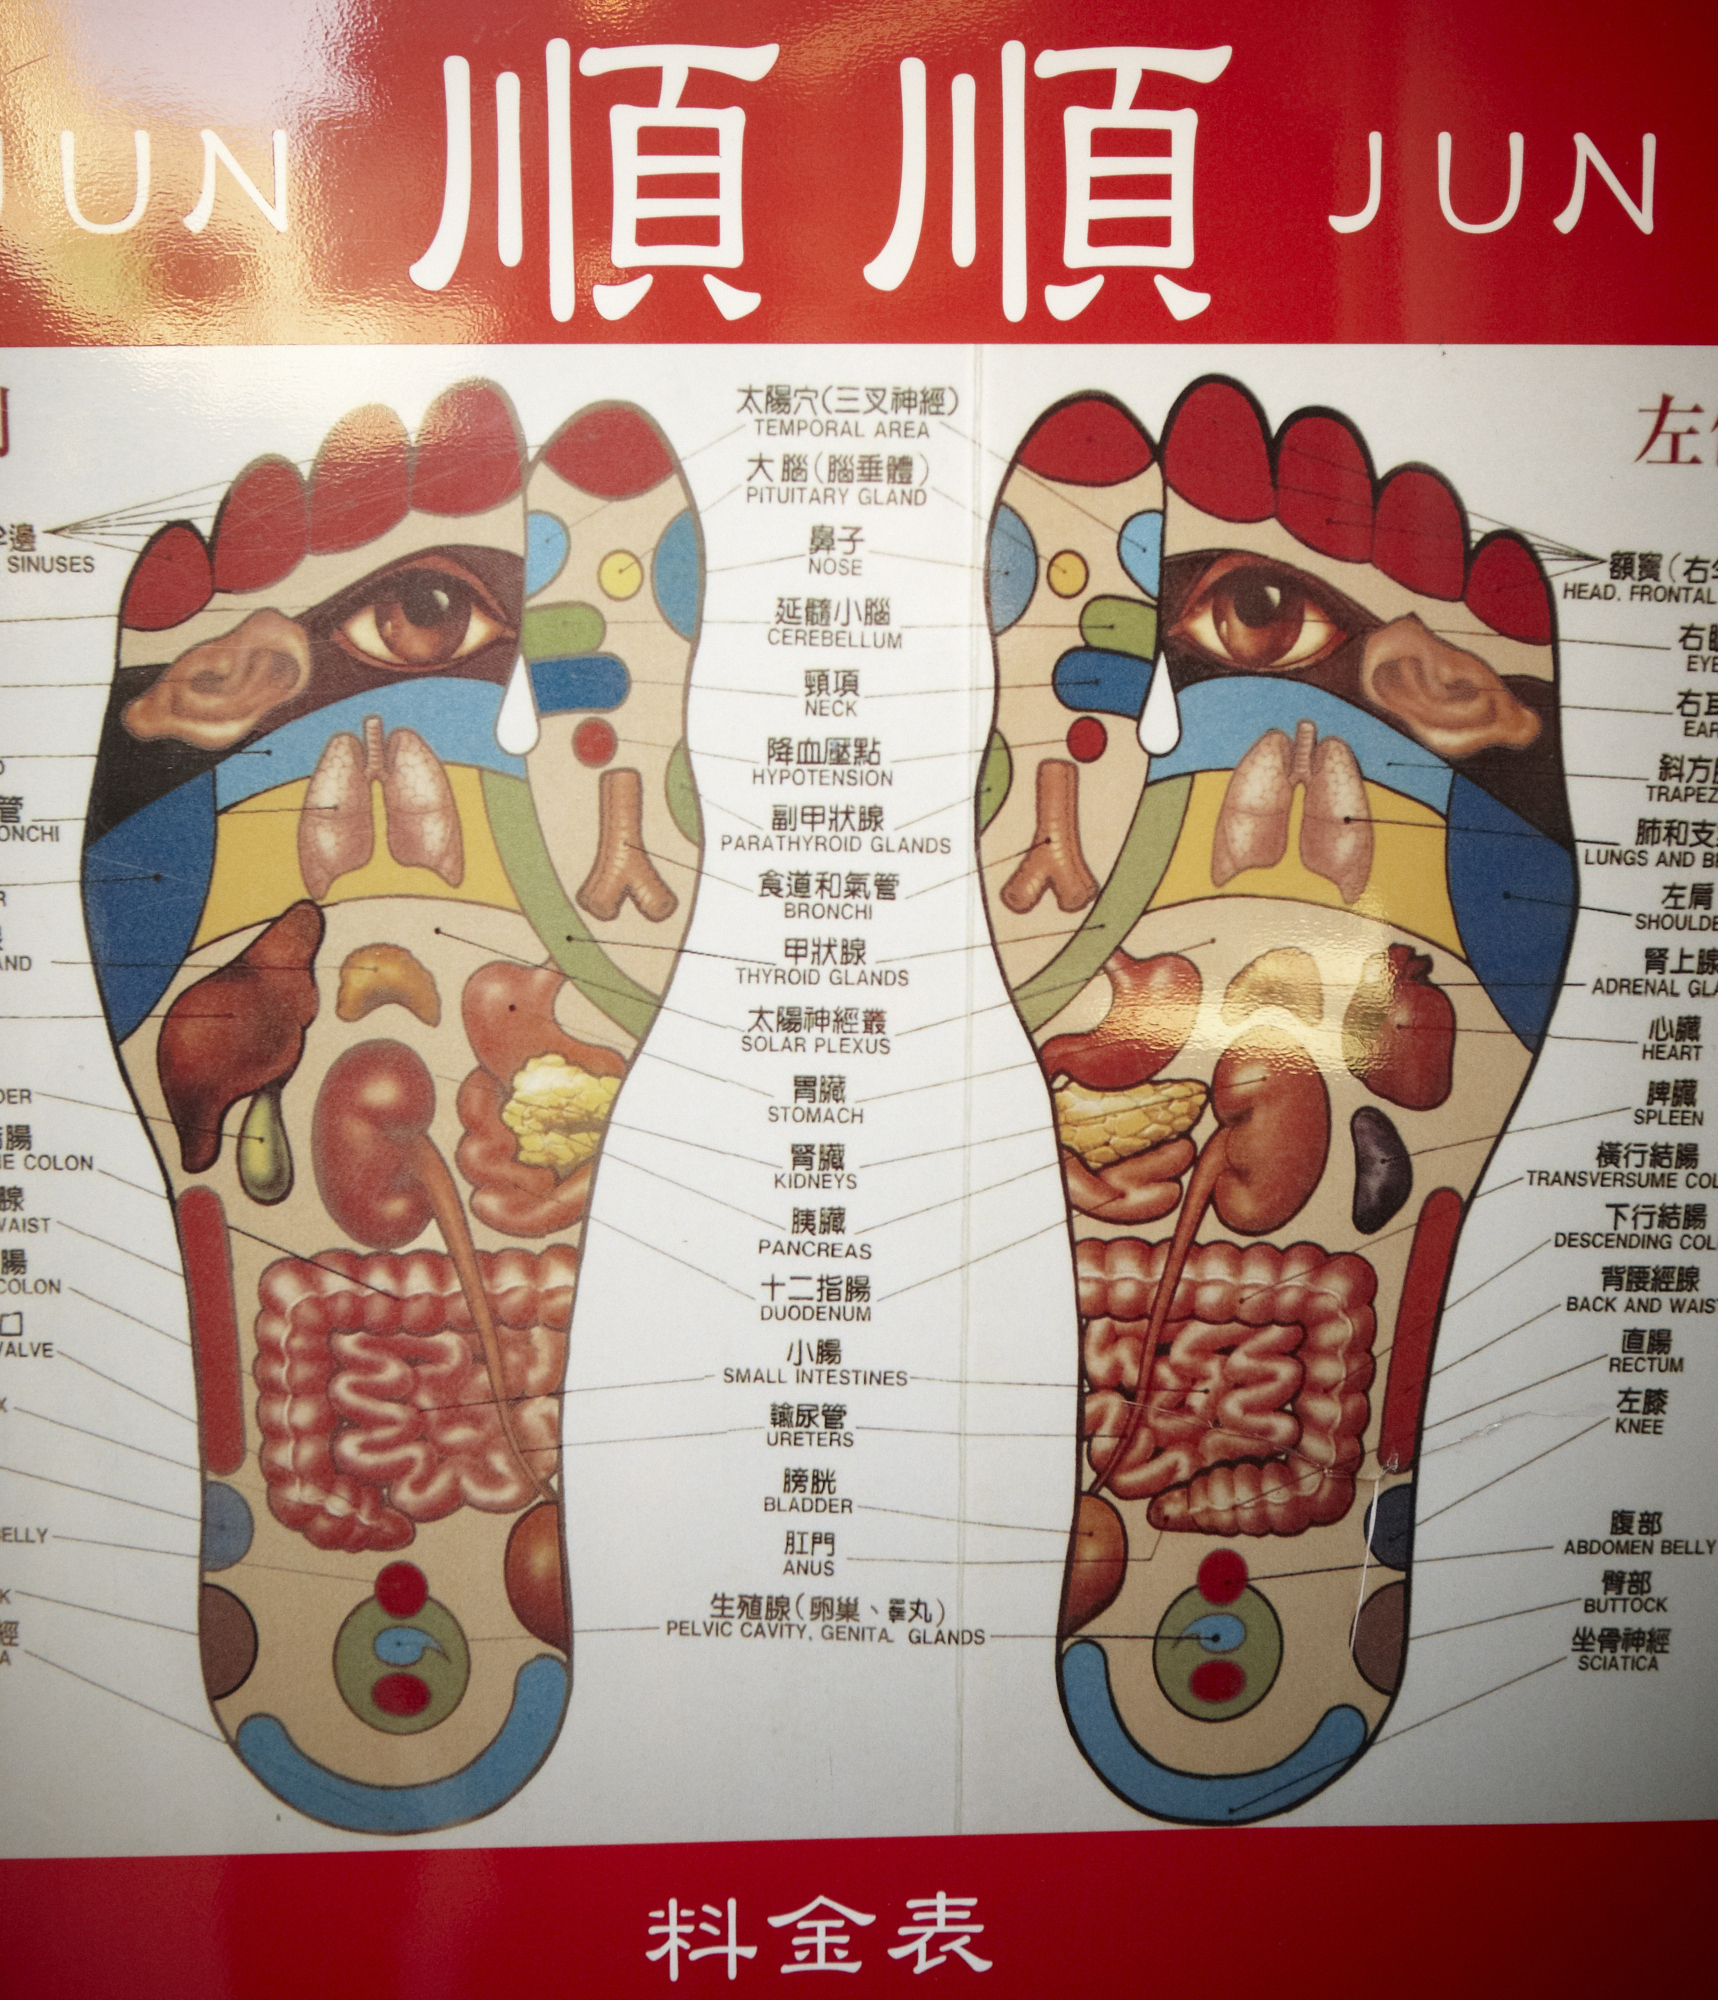 Poster: Why proper footwear is important to your pancreas